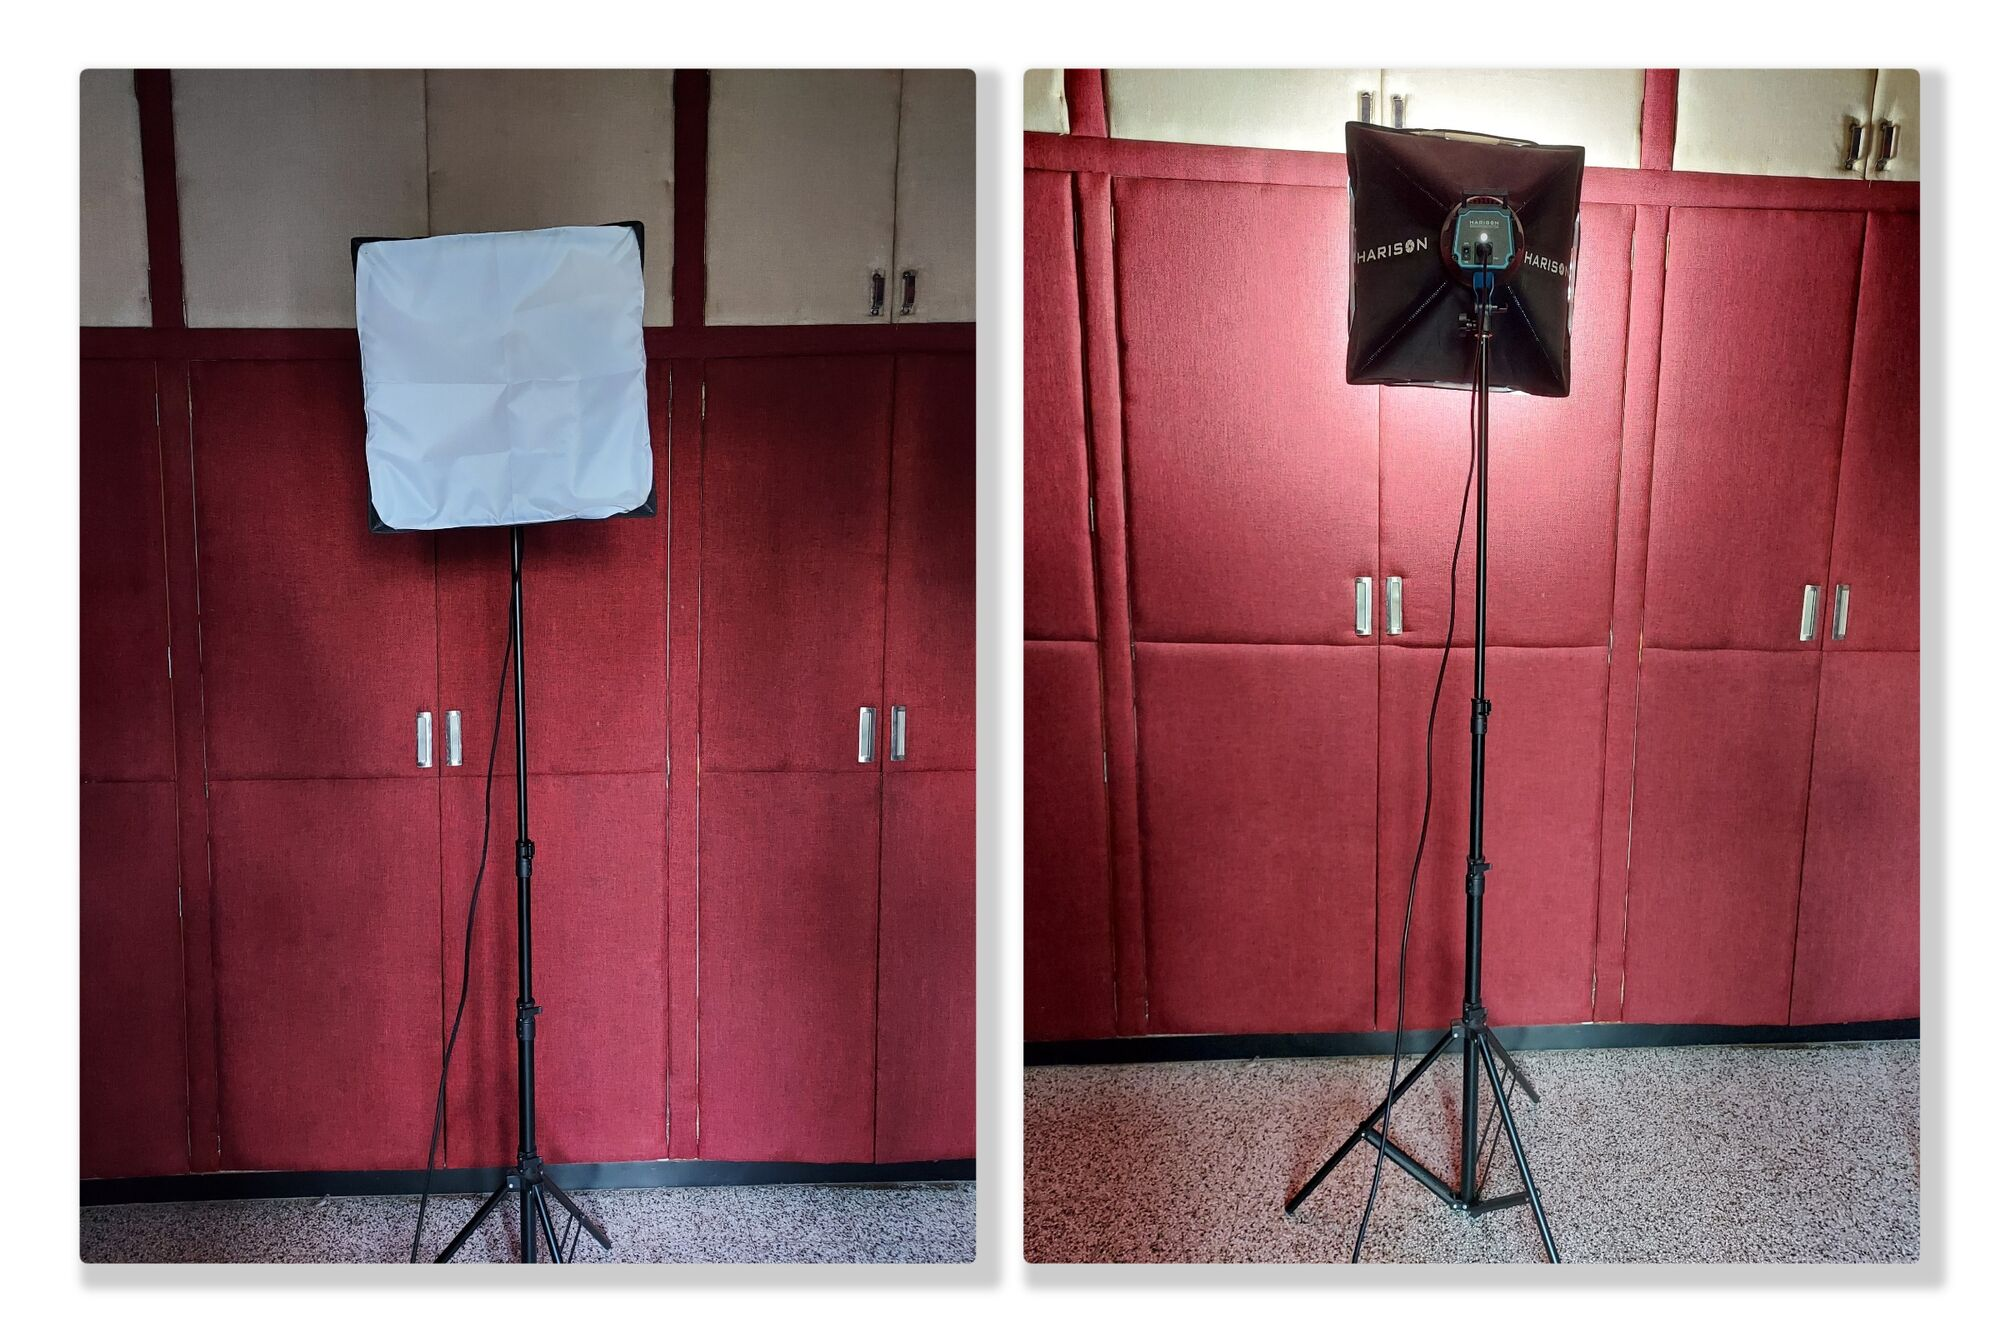 Studio Light for Still and Video from Harison